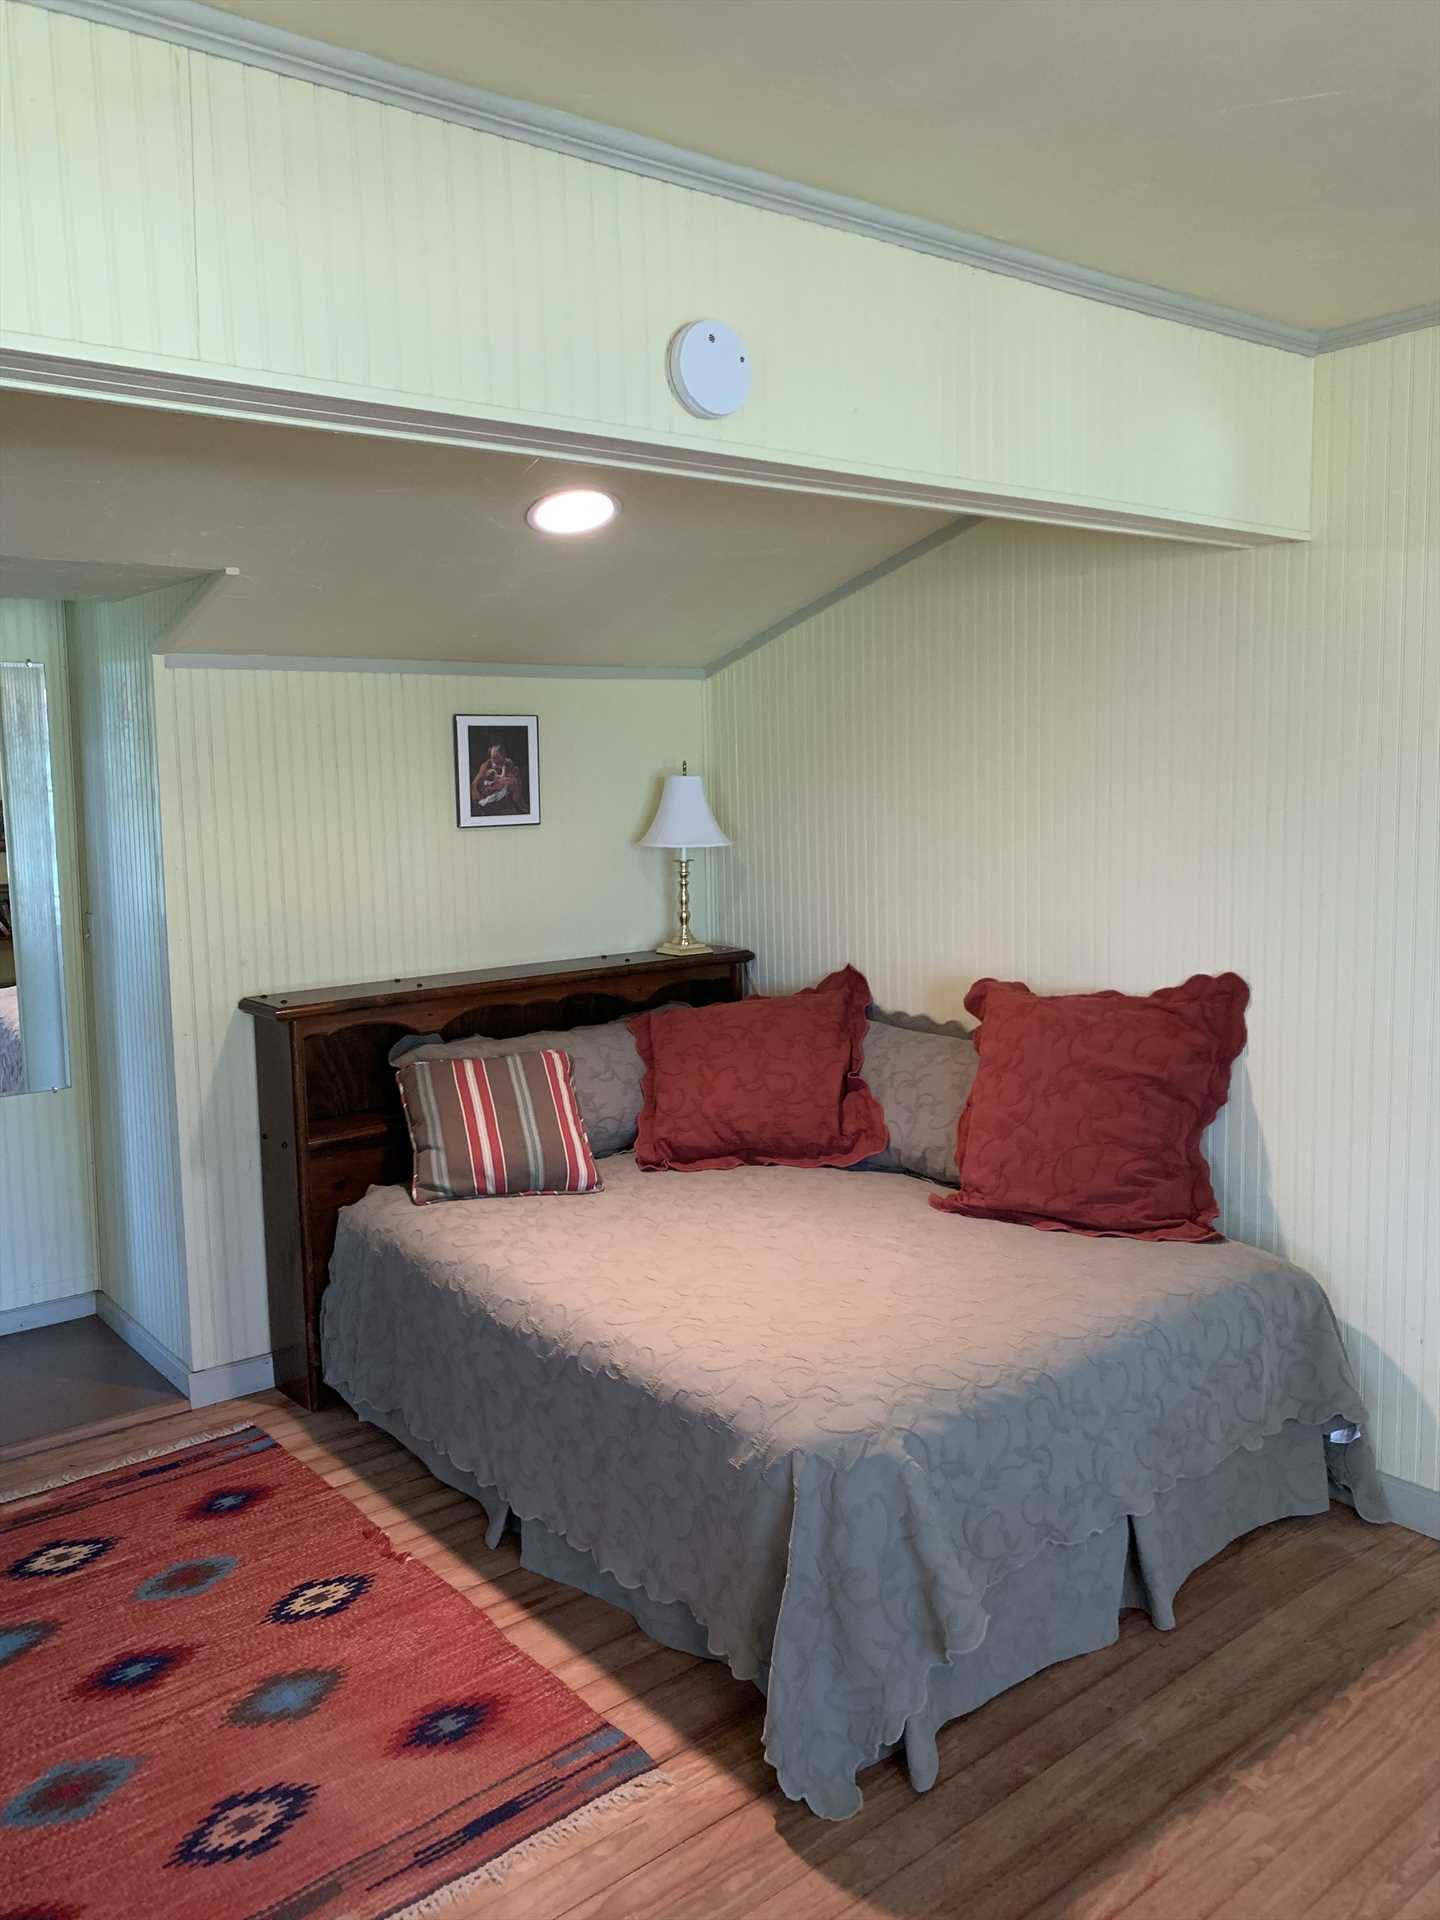 All the beds, and the full bathroom, include soft and clean linens for your visit.